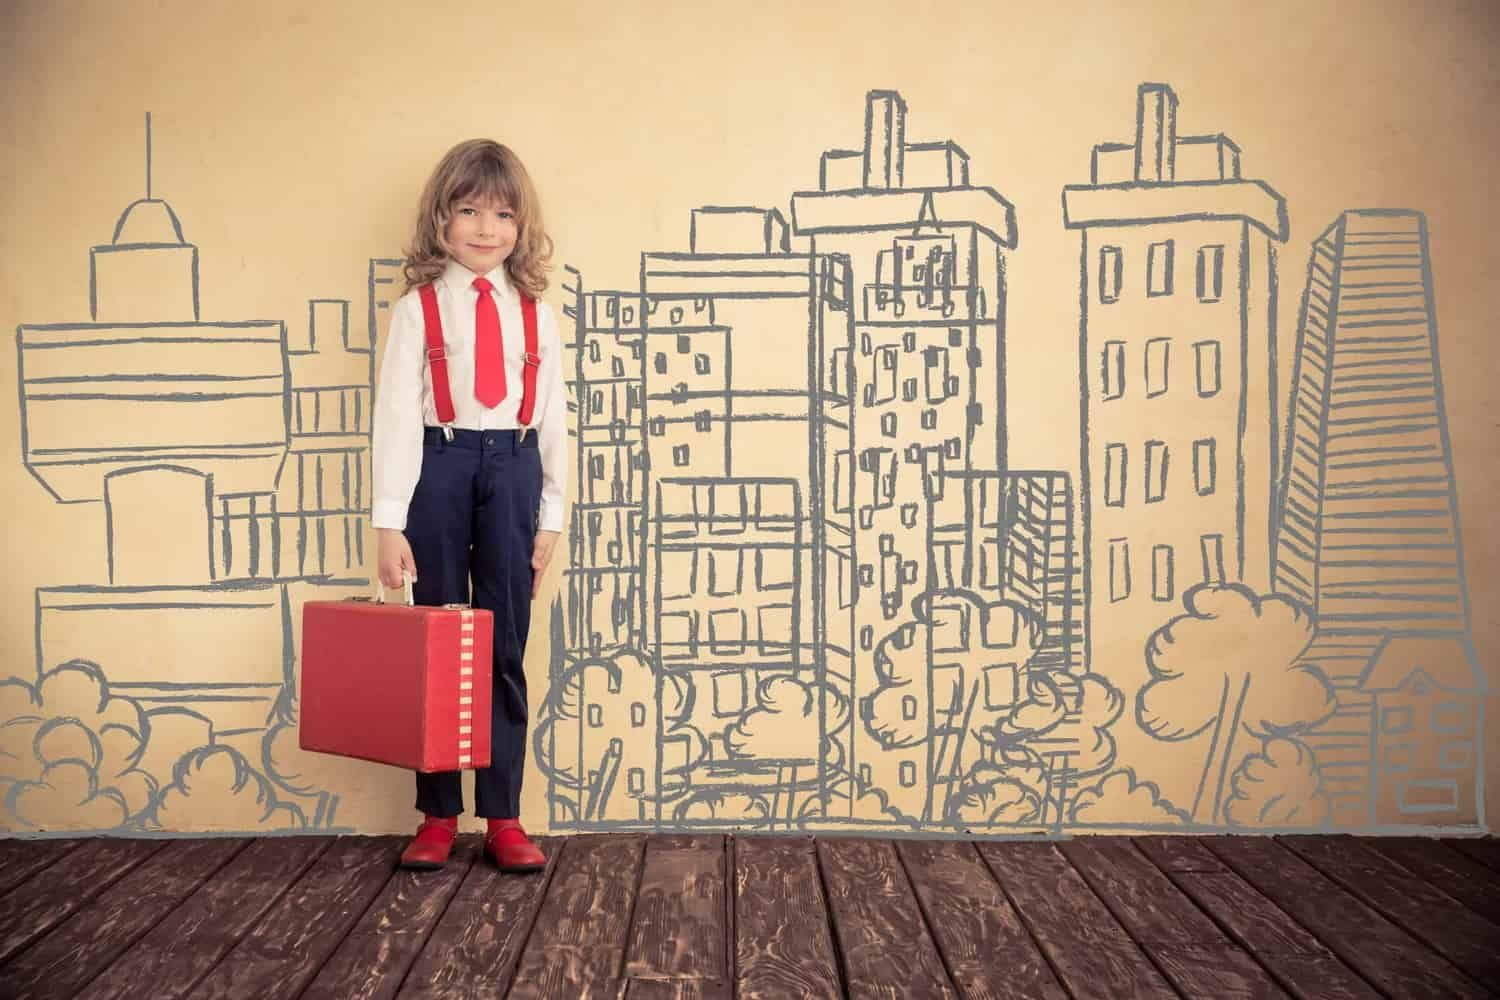 Little girl wearing tie carrying red suitcase in front of city.